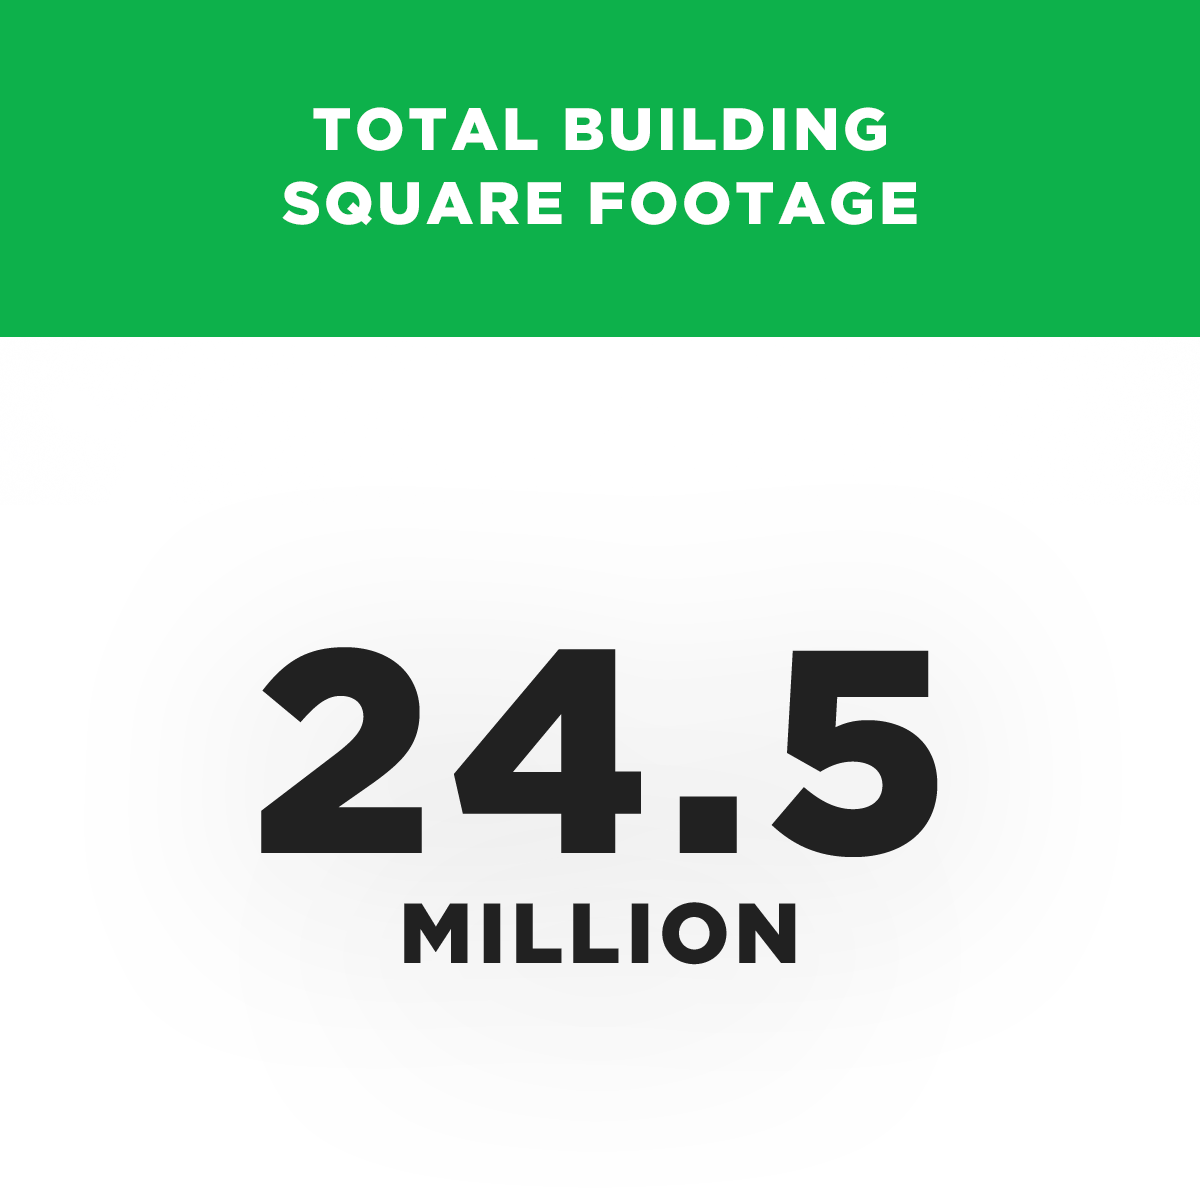 Total Building Square Footage - 24.5 Million